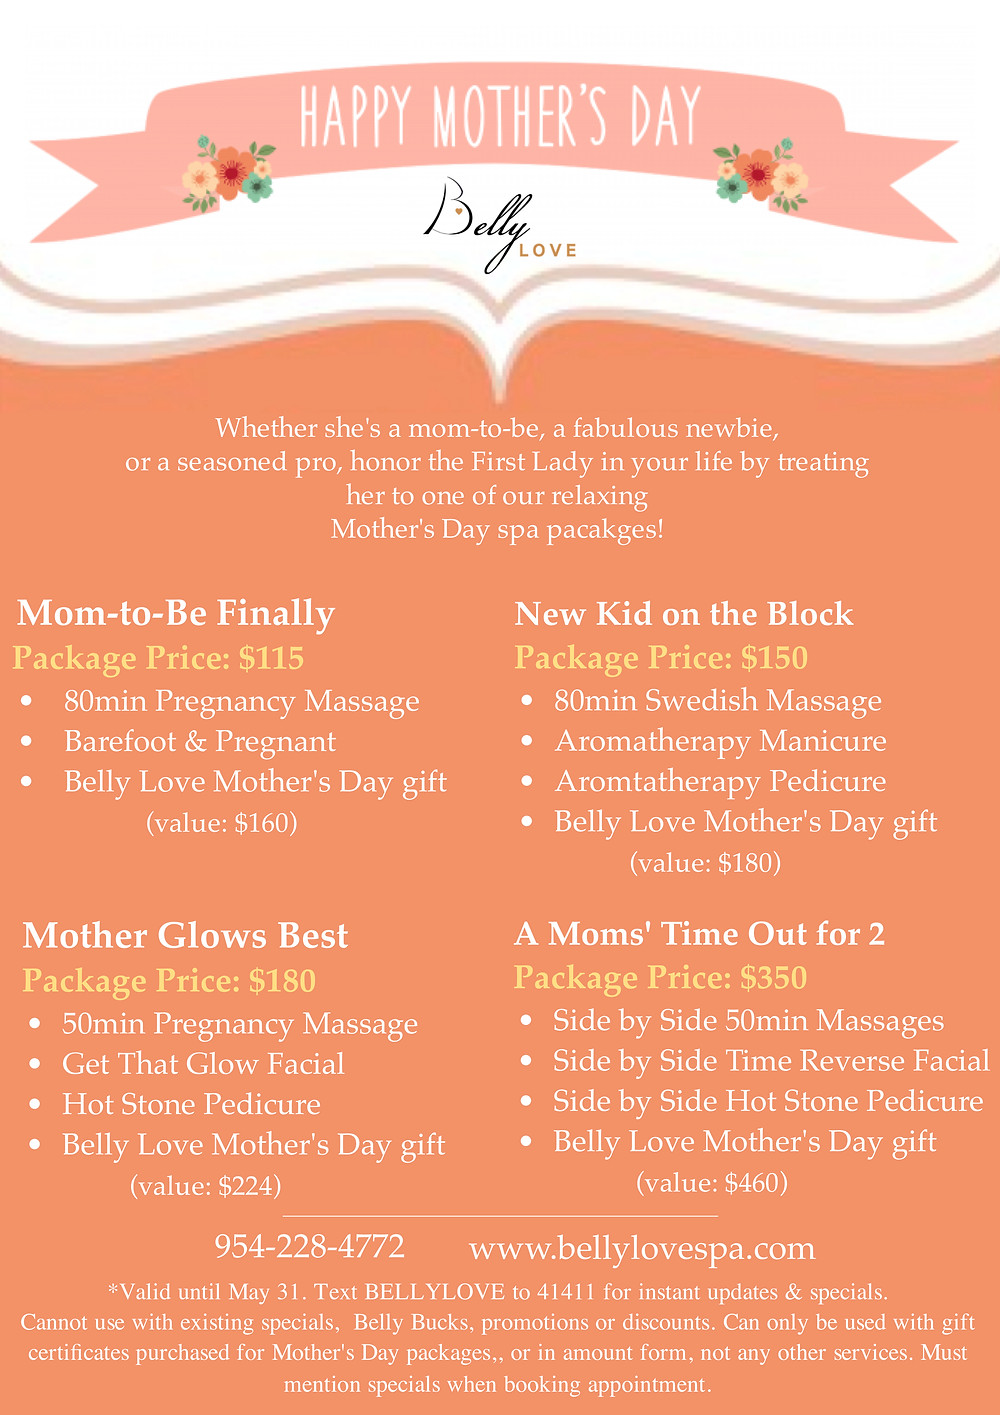 Mothers Day Packages _1.jpg